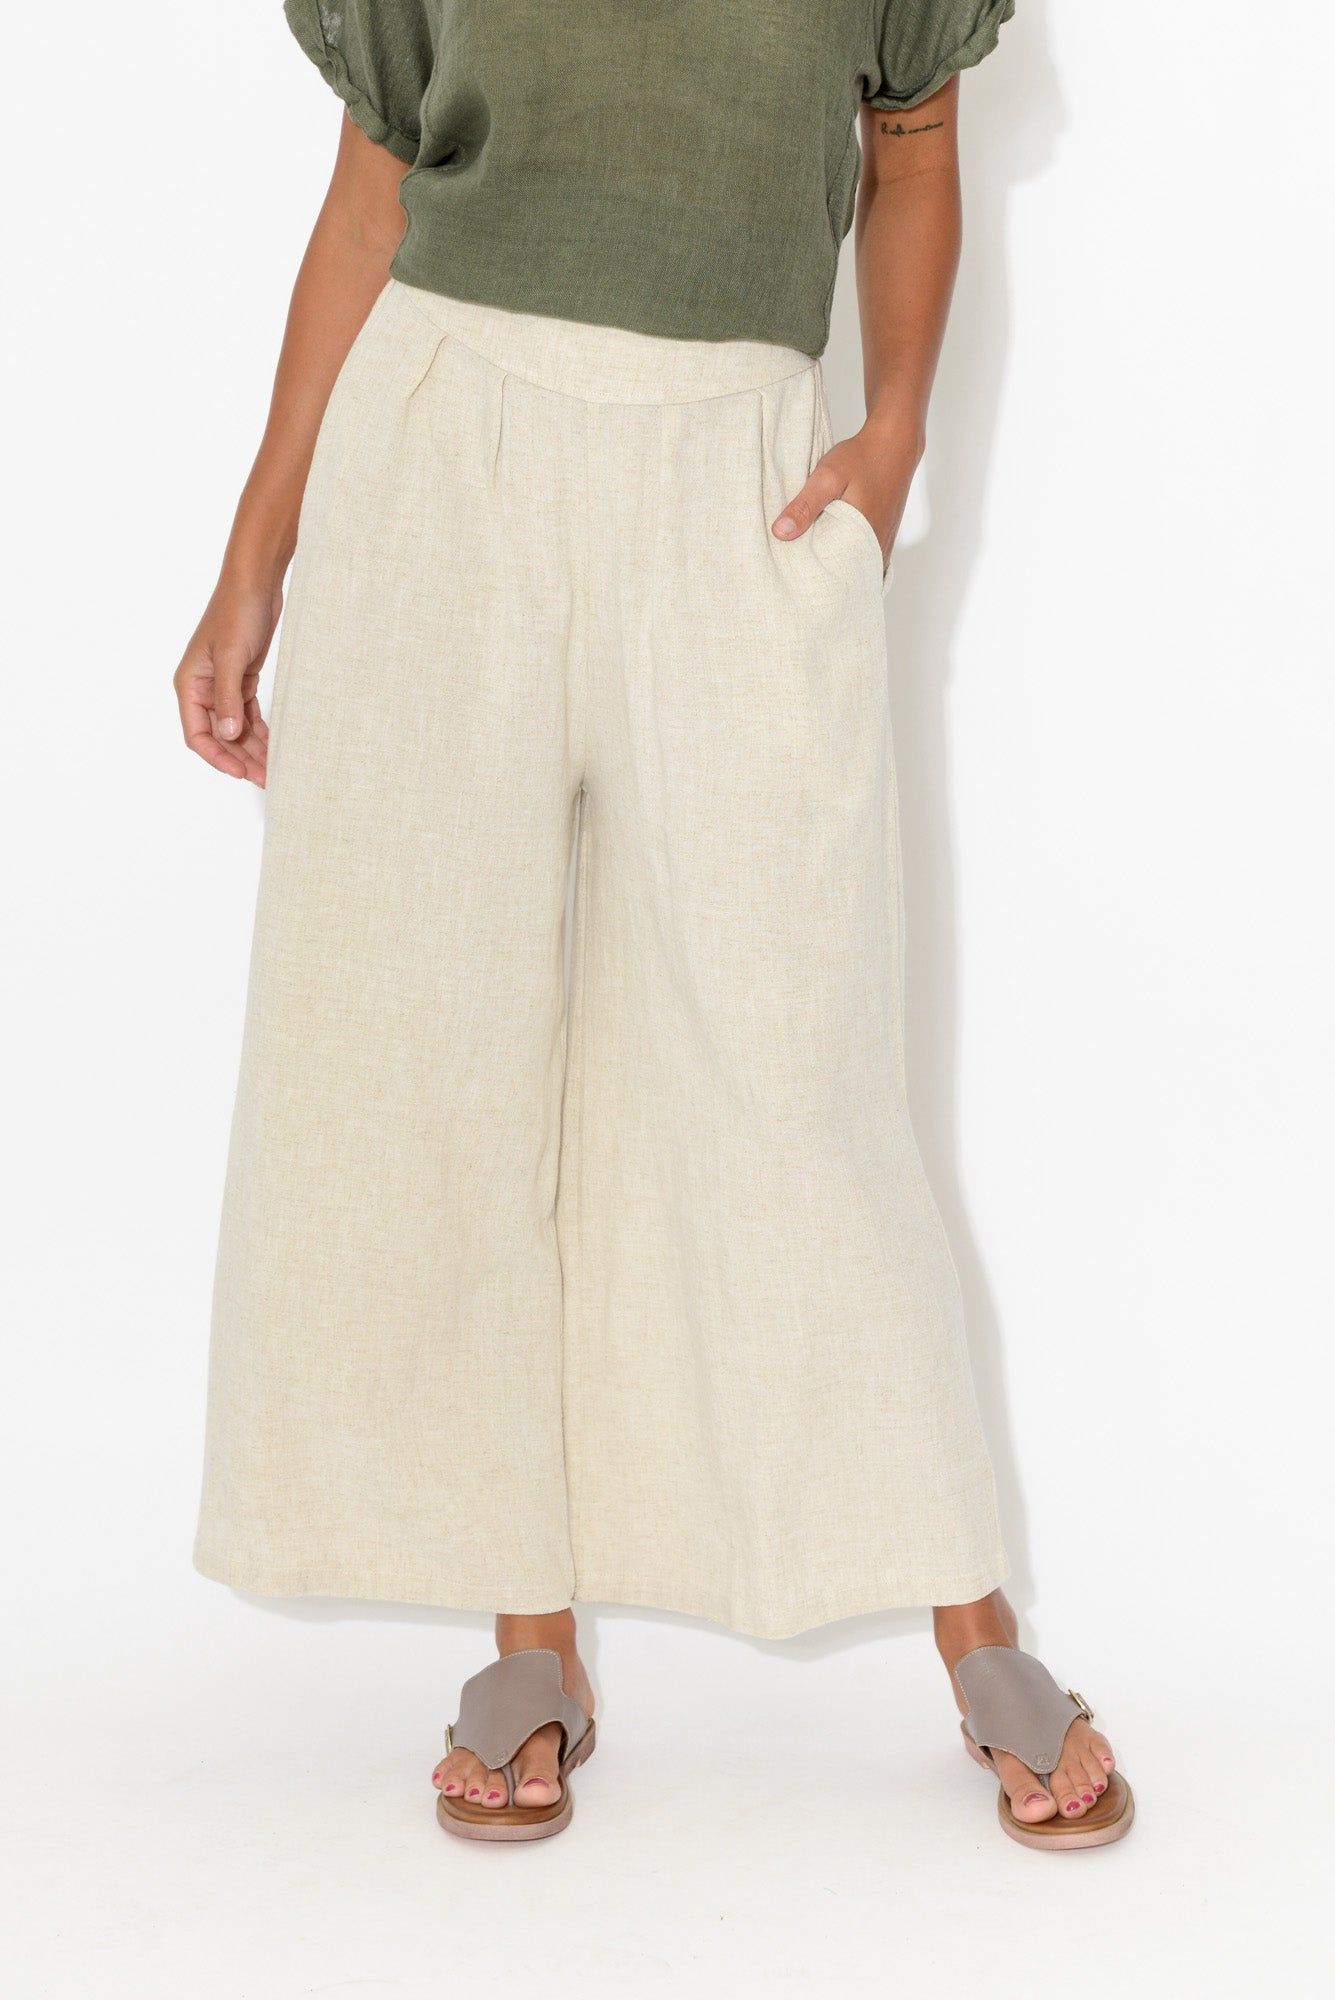 Resort Beige Wide Leg Pant